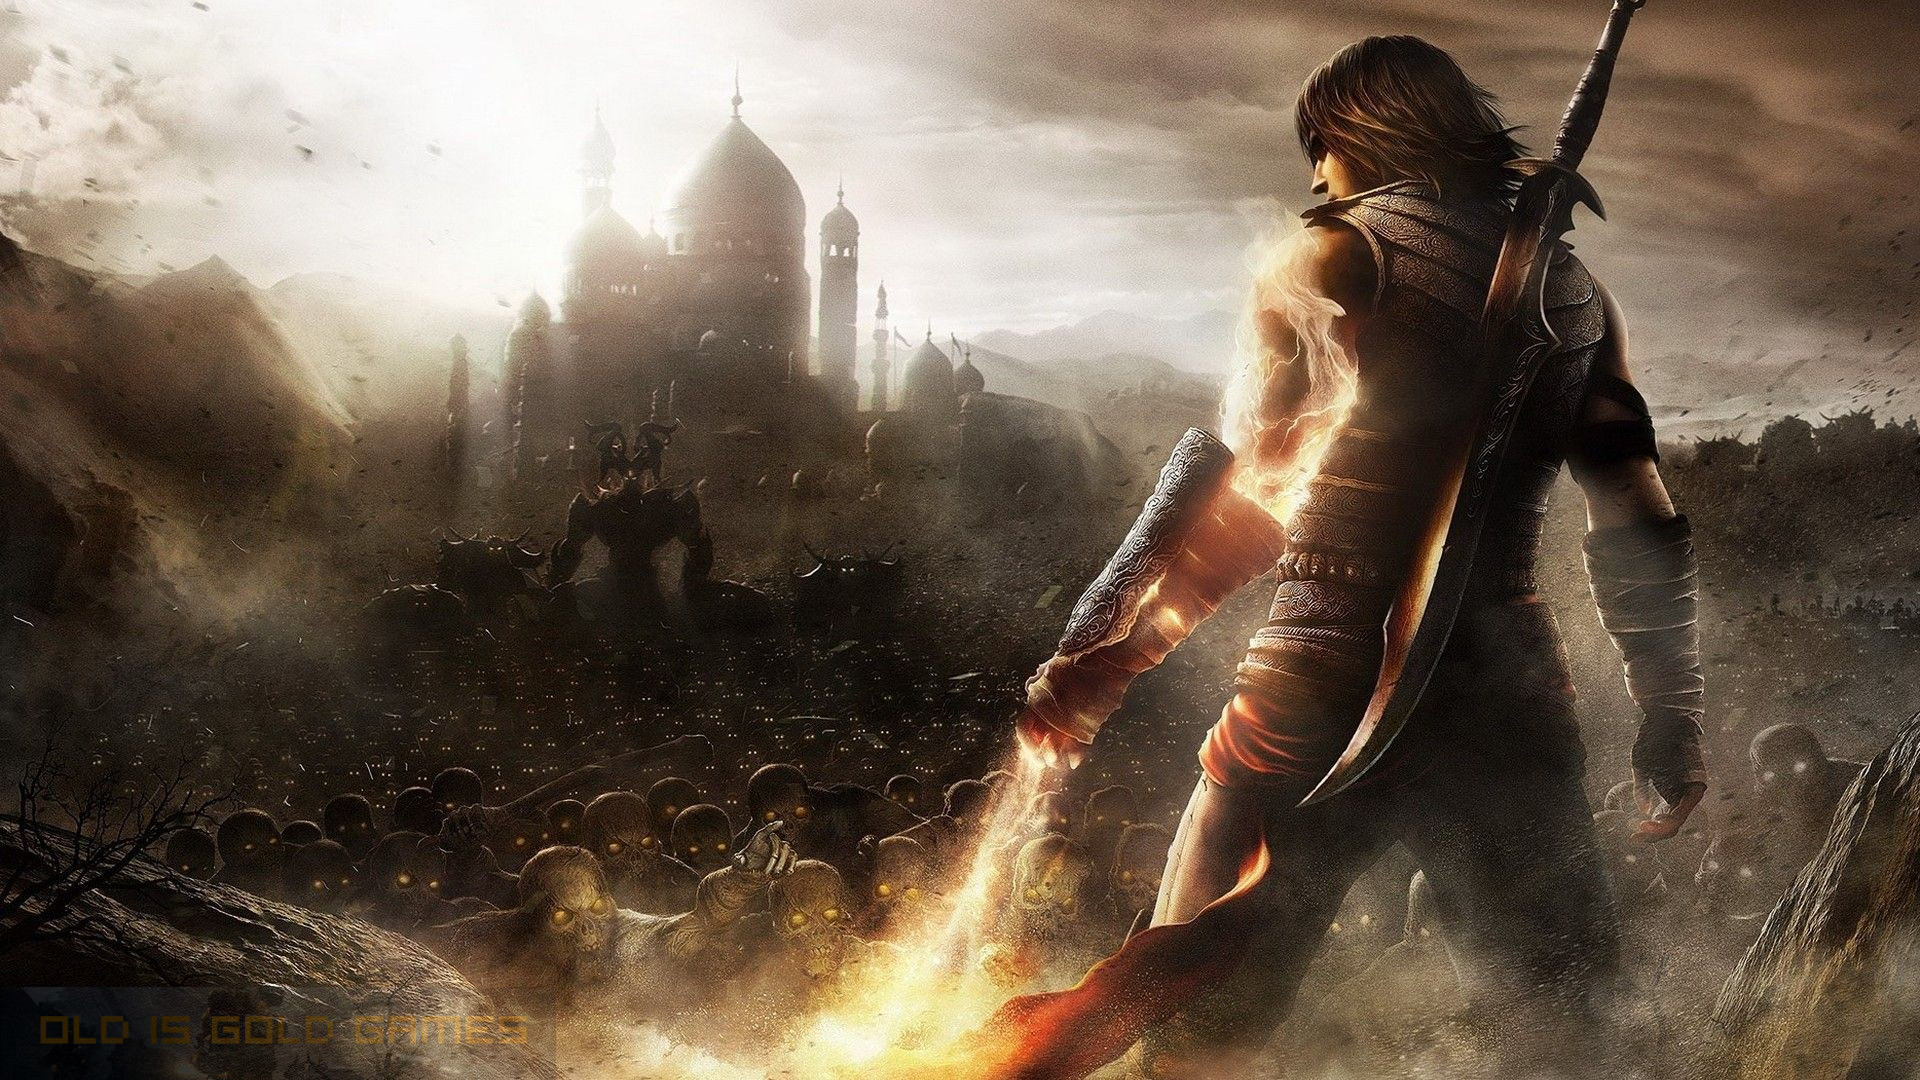 Prince of Persia The Two Thrones Features